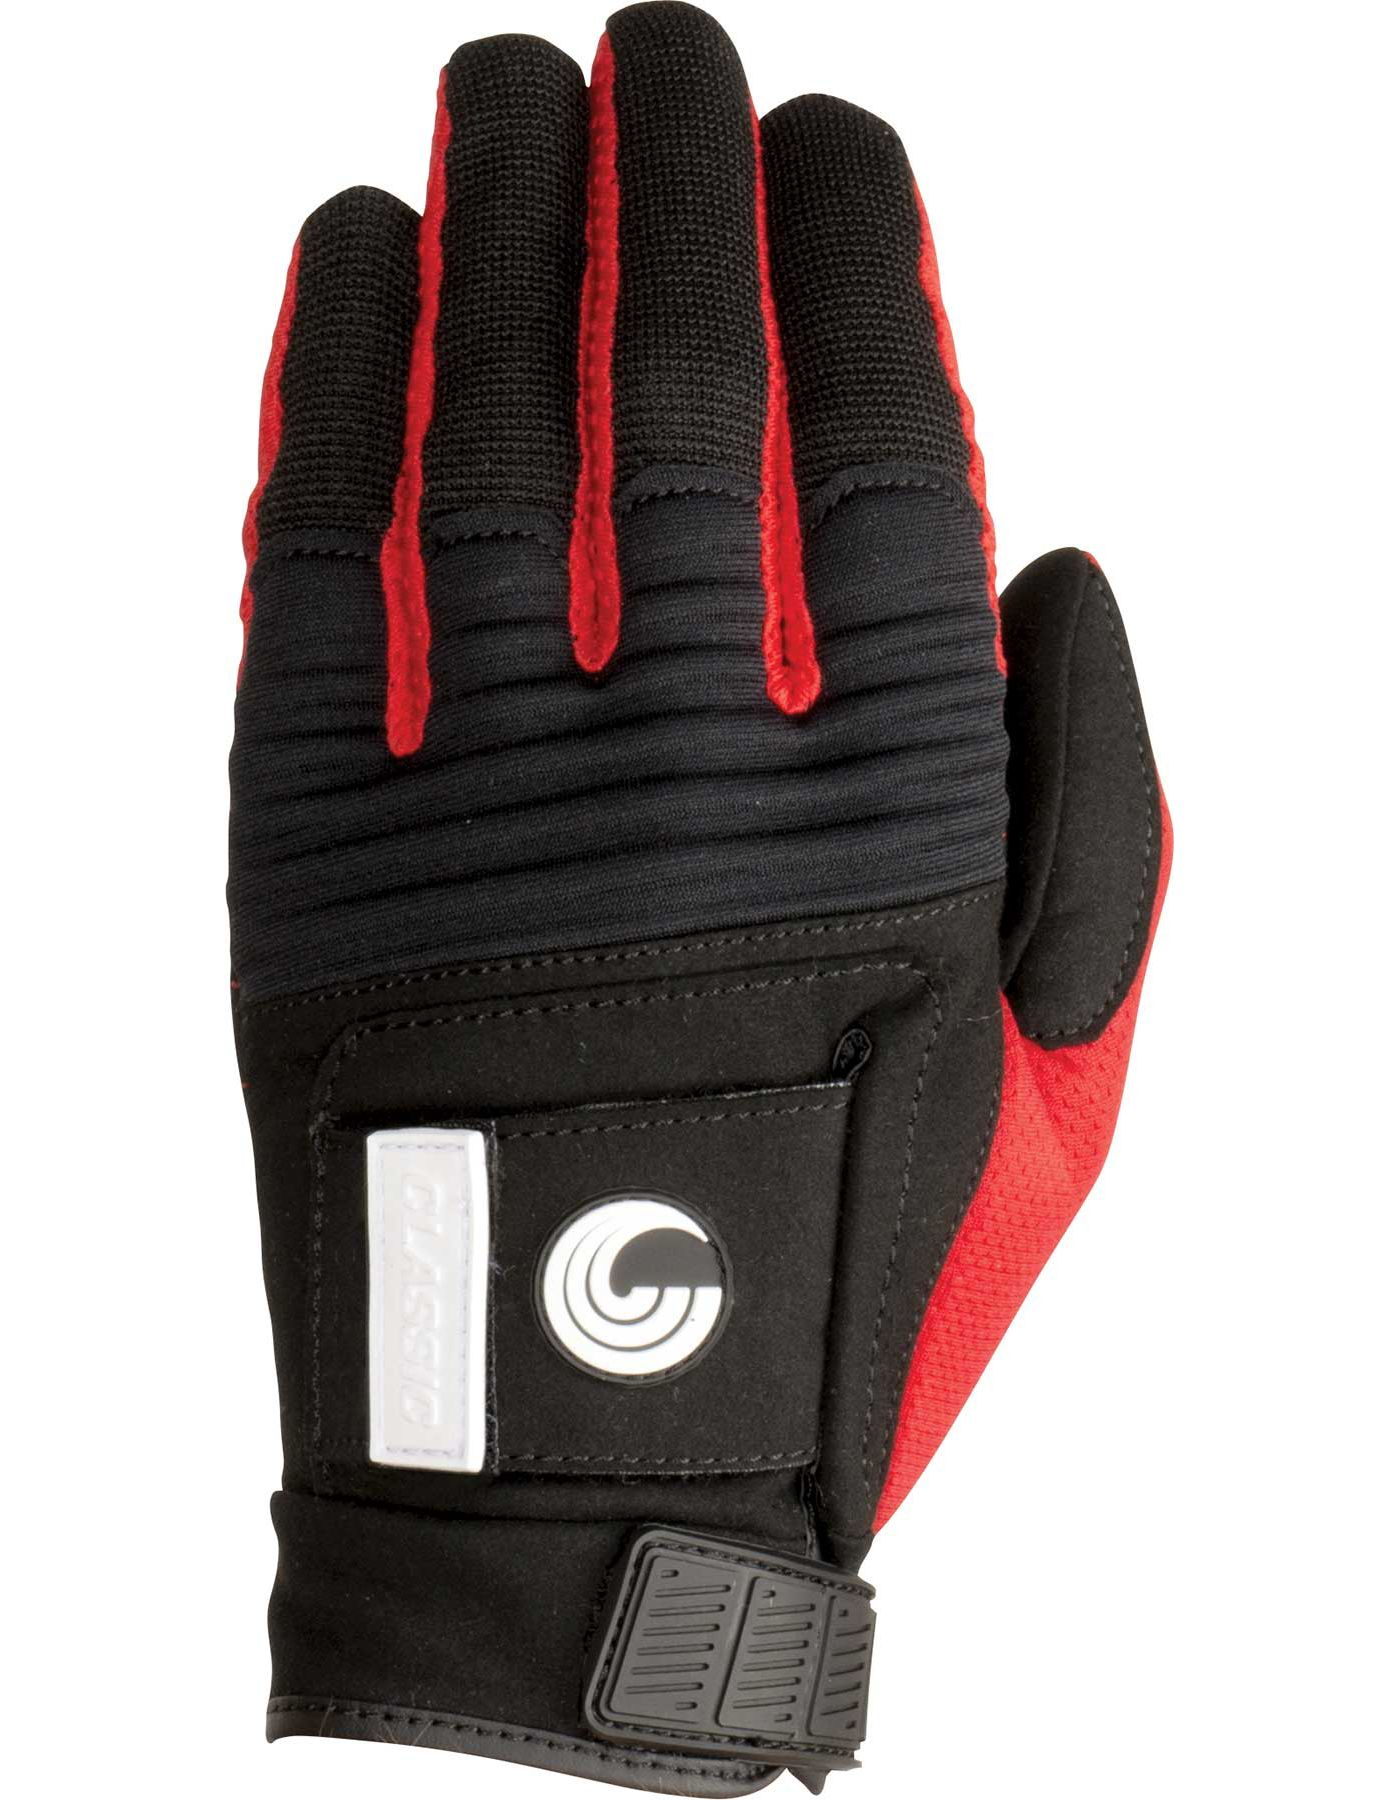 Connelly Men's Classic Water Ski Gloves